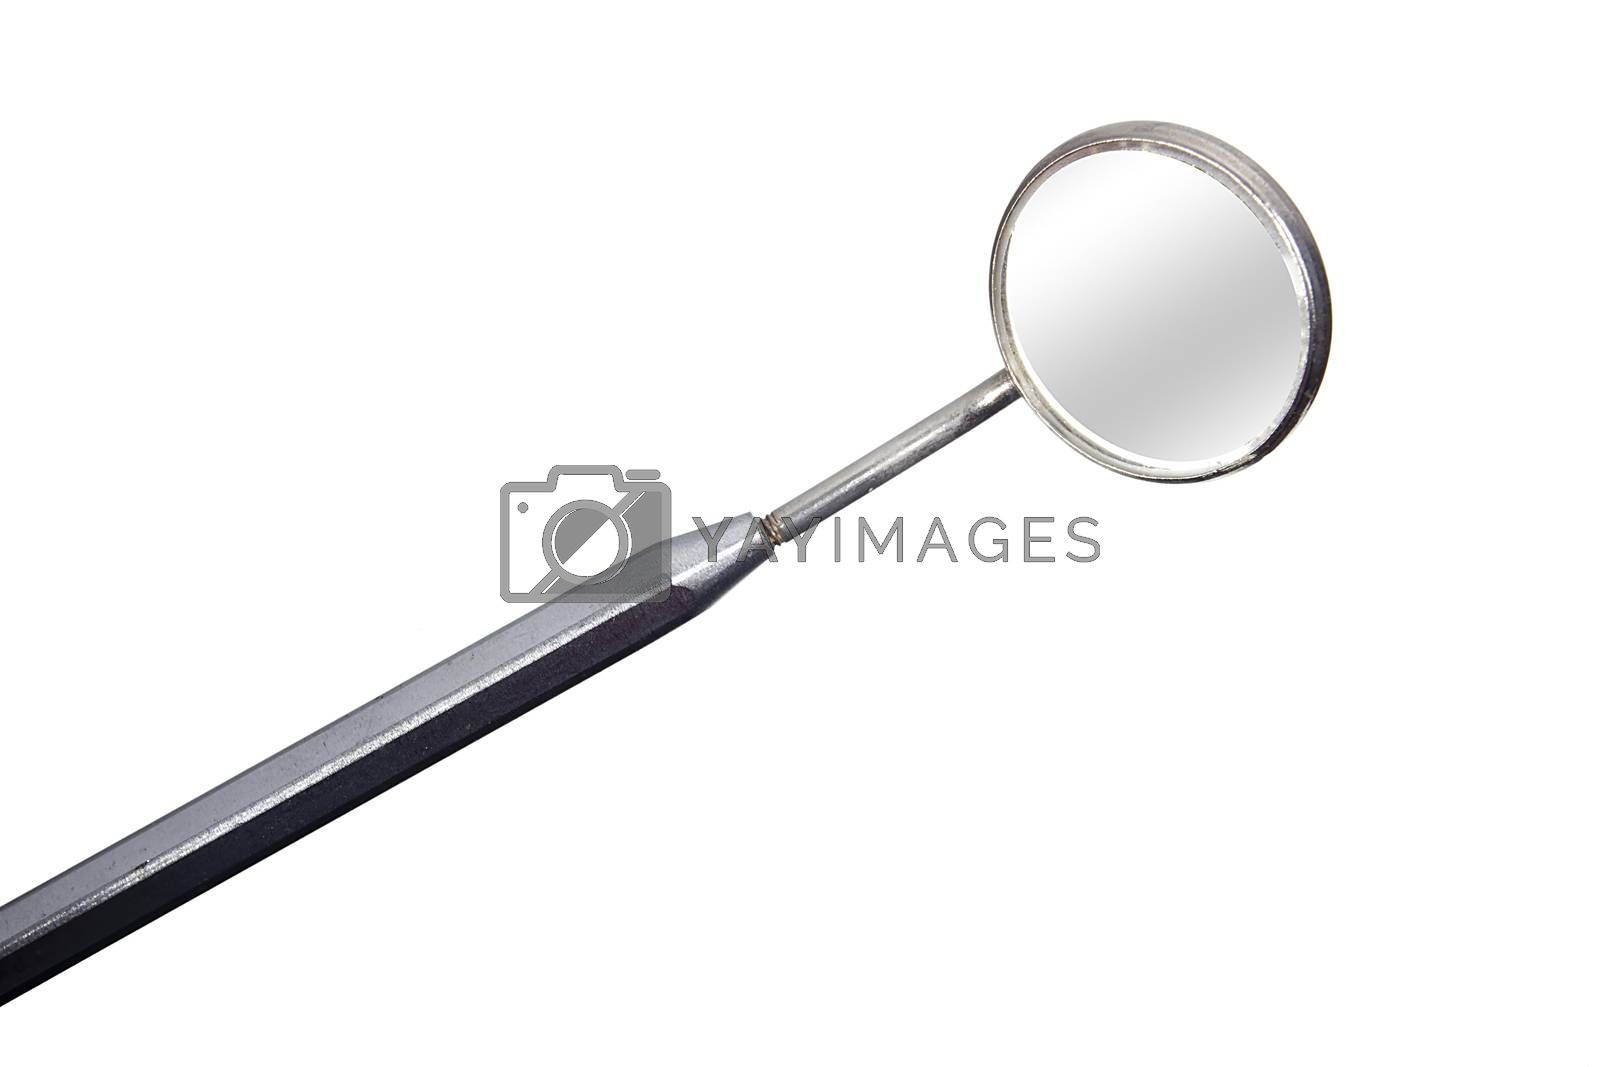 Dental tools. Dental tools on a white background